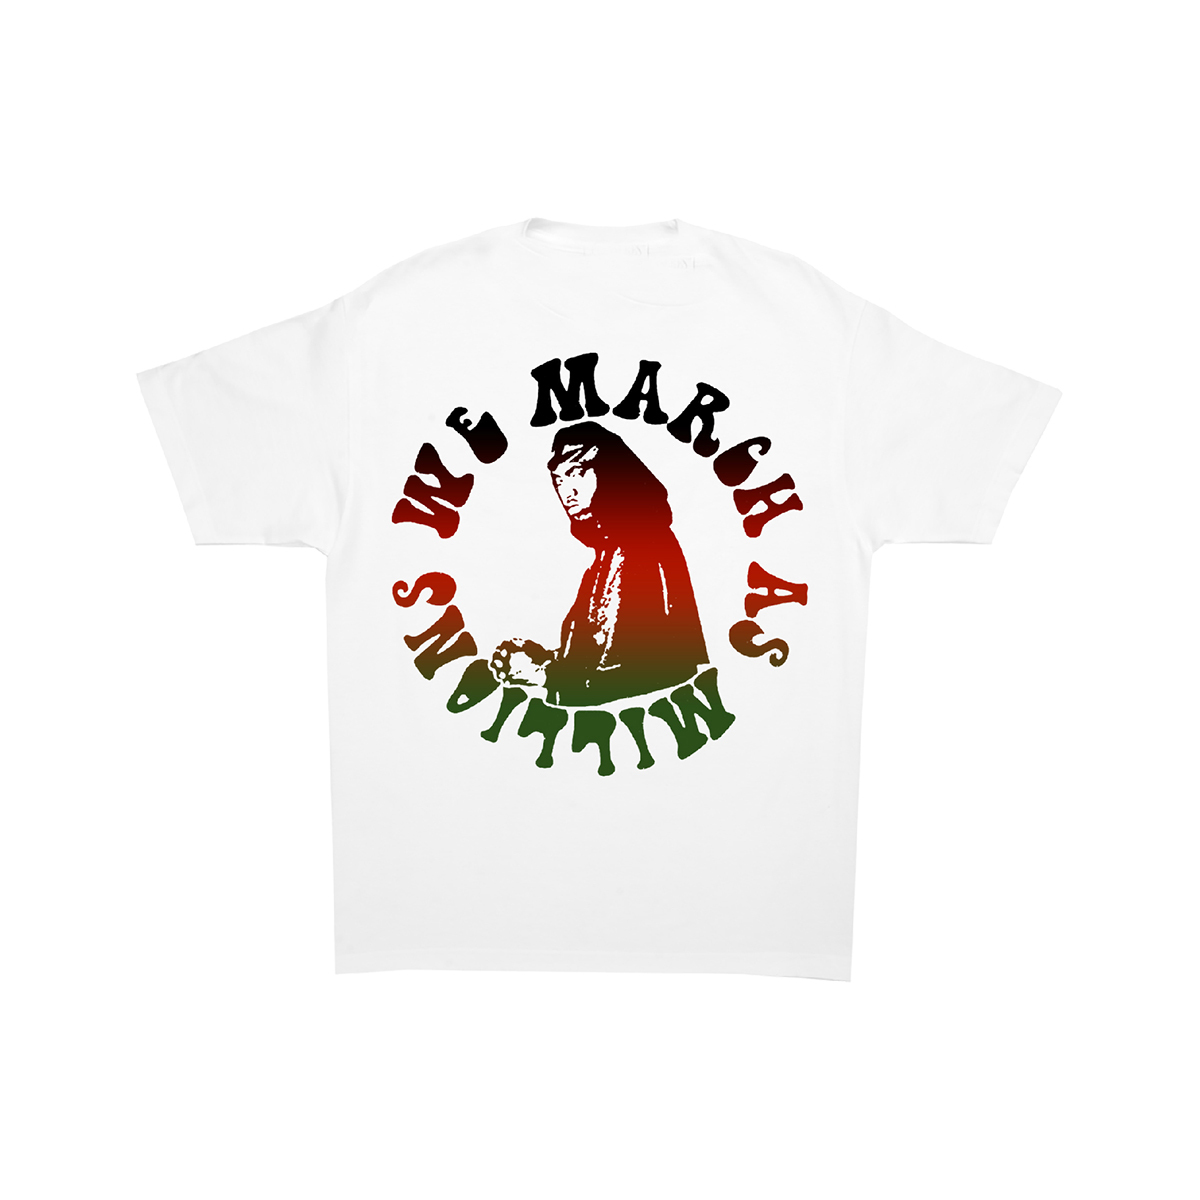 Nas We March as Millions T-shirt